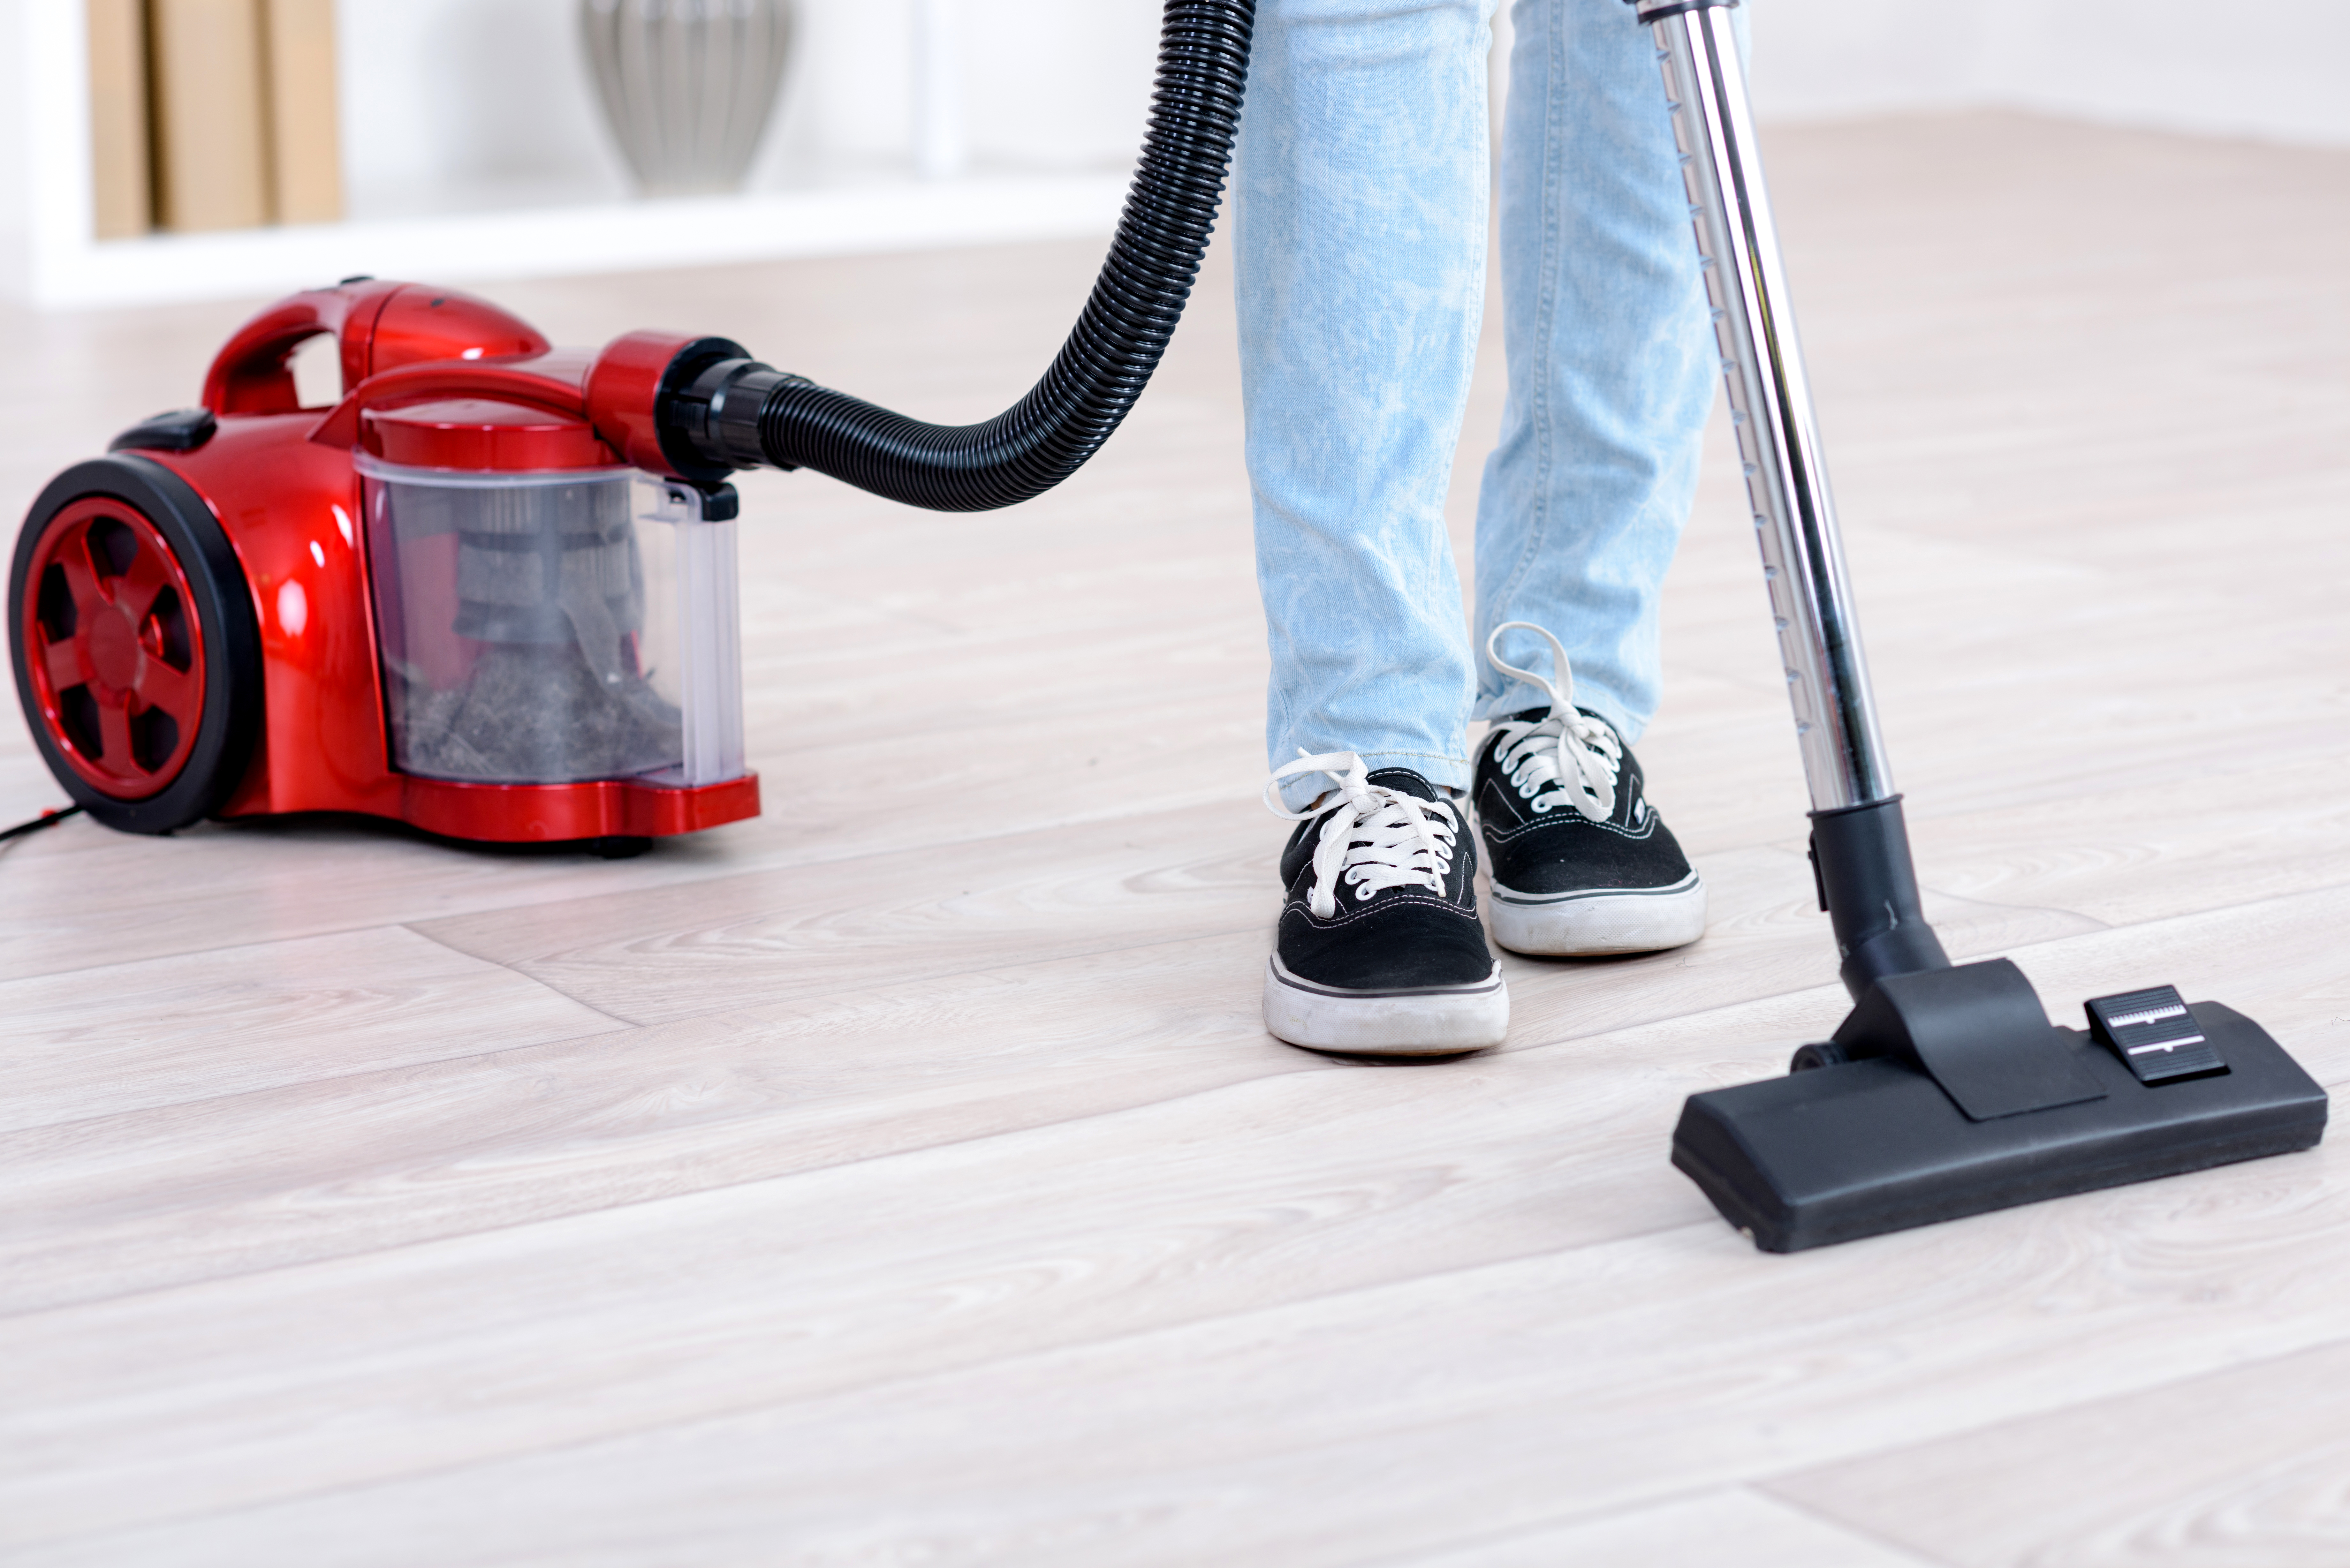 Red vacuum cleaner being used